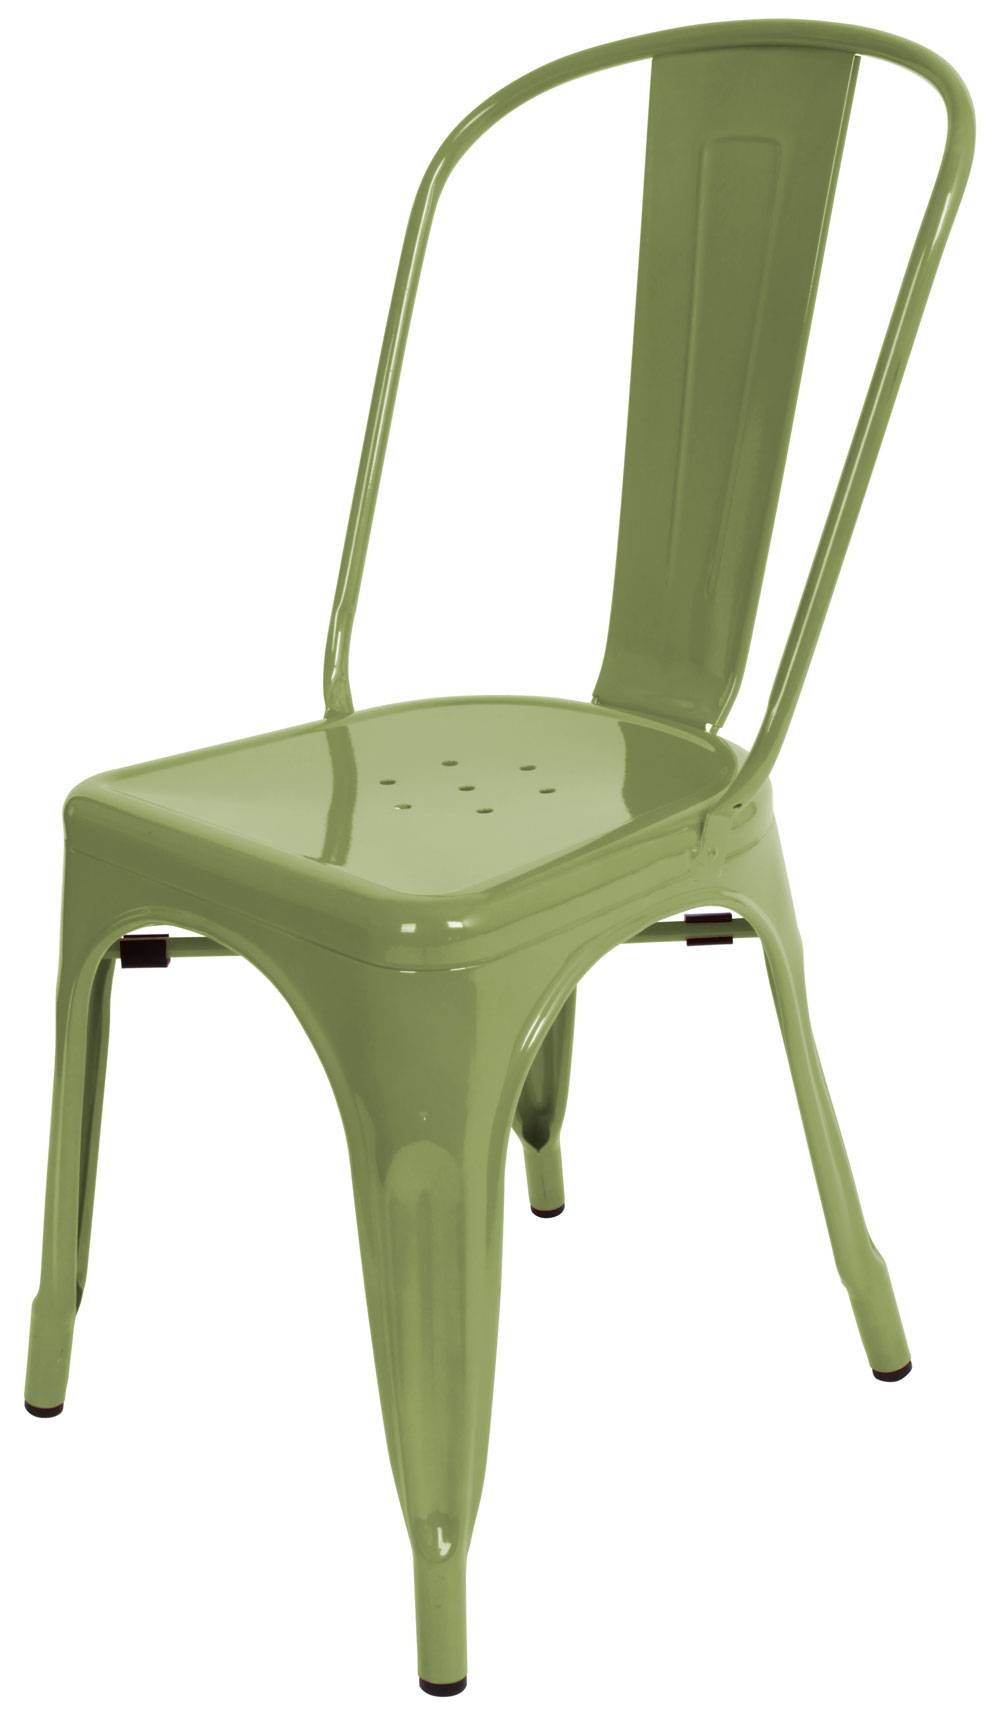 Marais Metal Dining Chair/ Green Marais Tolix Chair /Green Tolix Dining  Metal Chair